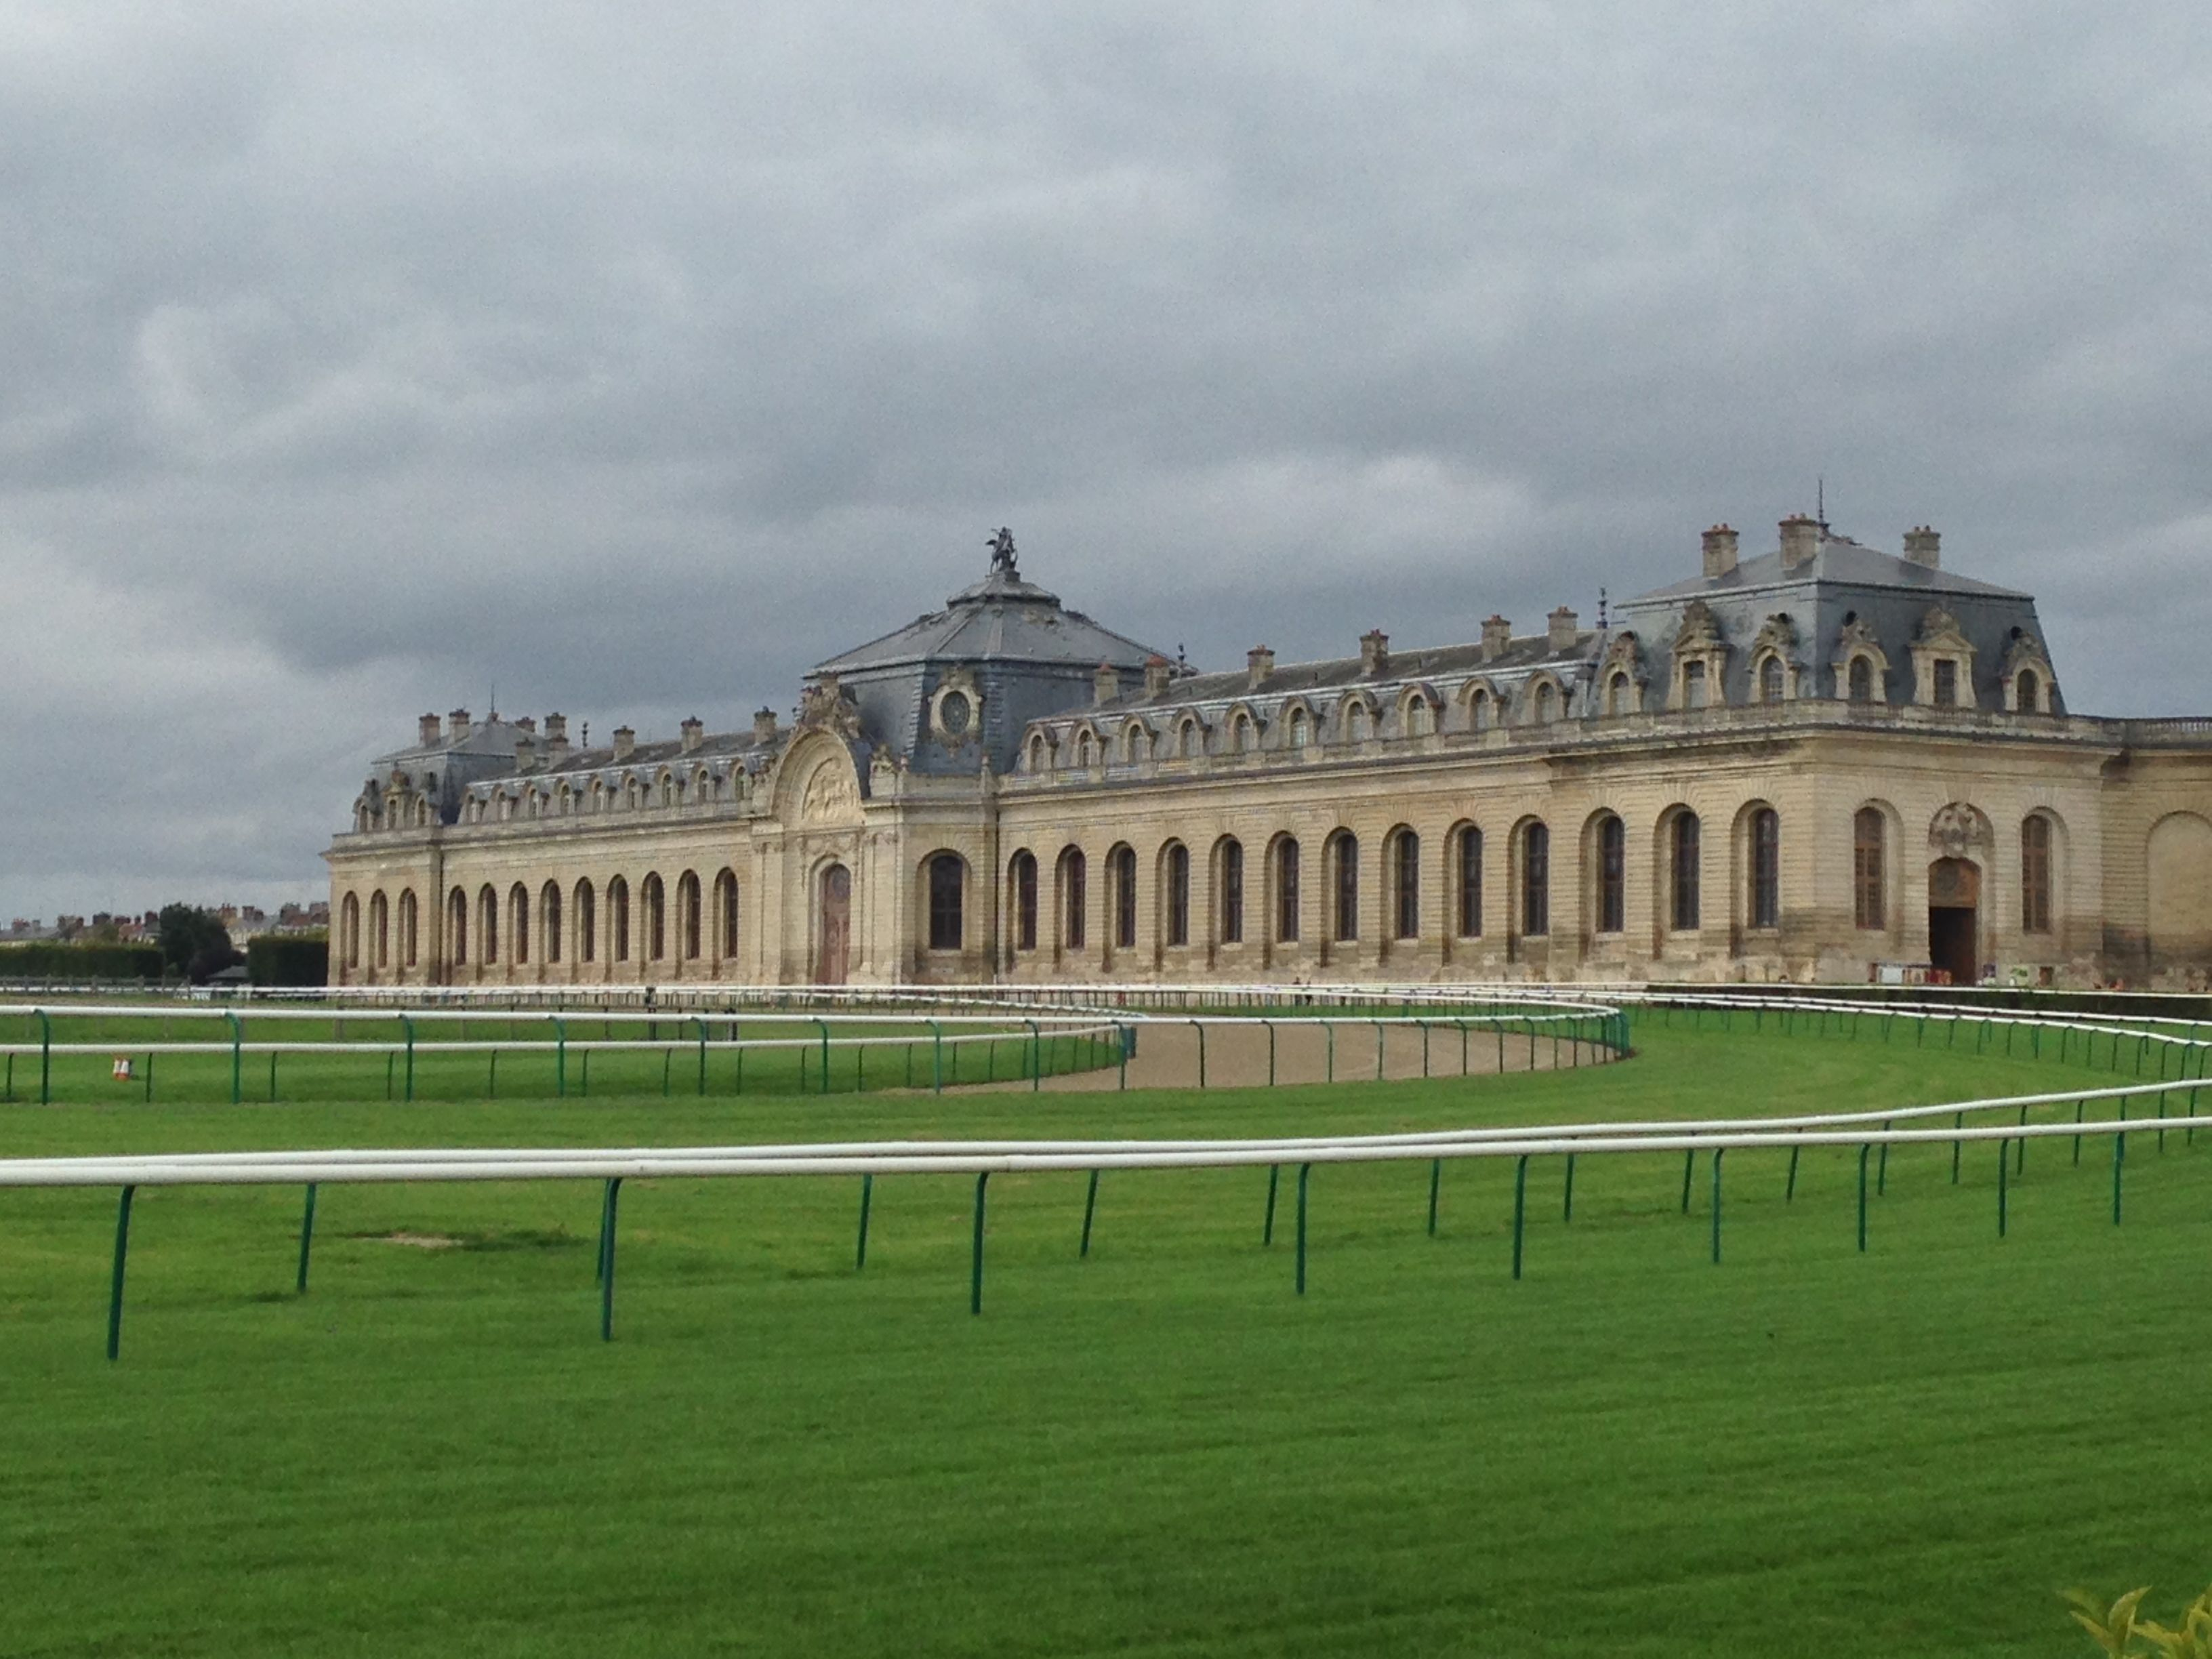 View of the Grand Stables and Hippodrome (or race track in English).